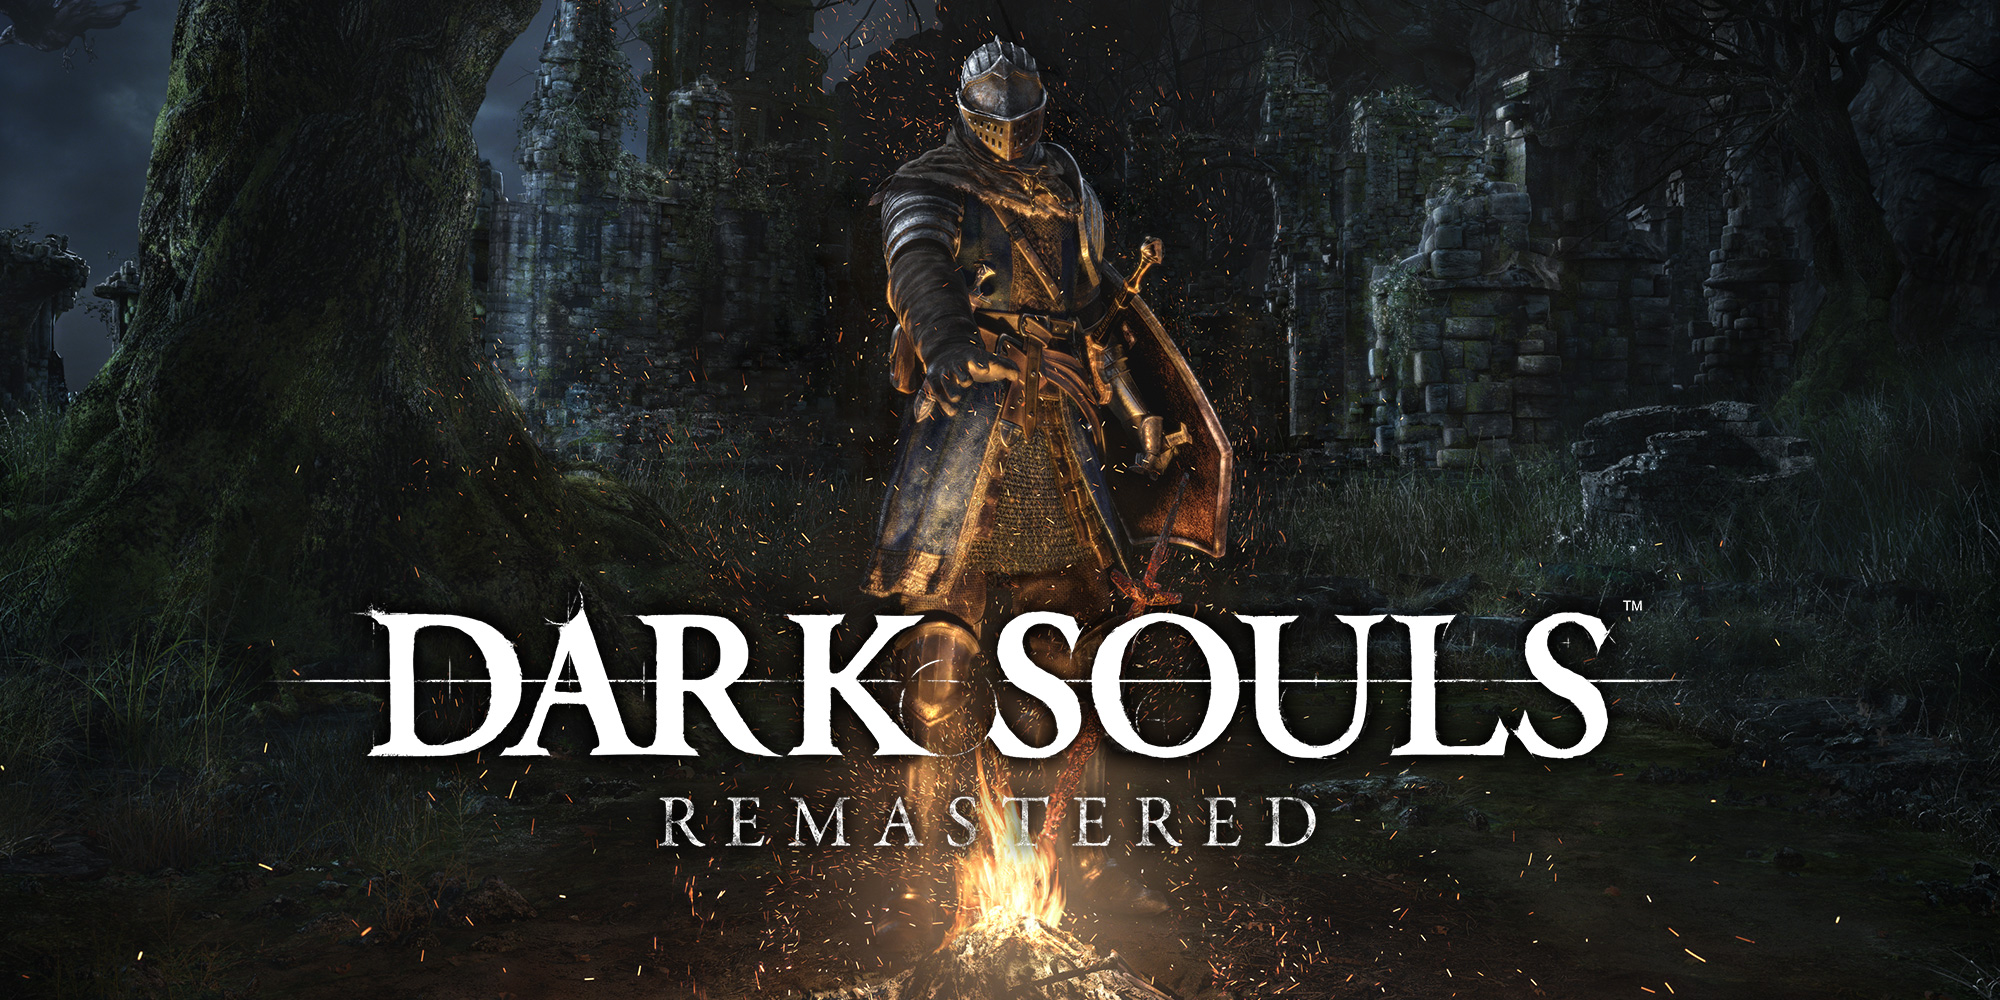 Dark souls remastered is on sale on indiegala right now